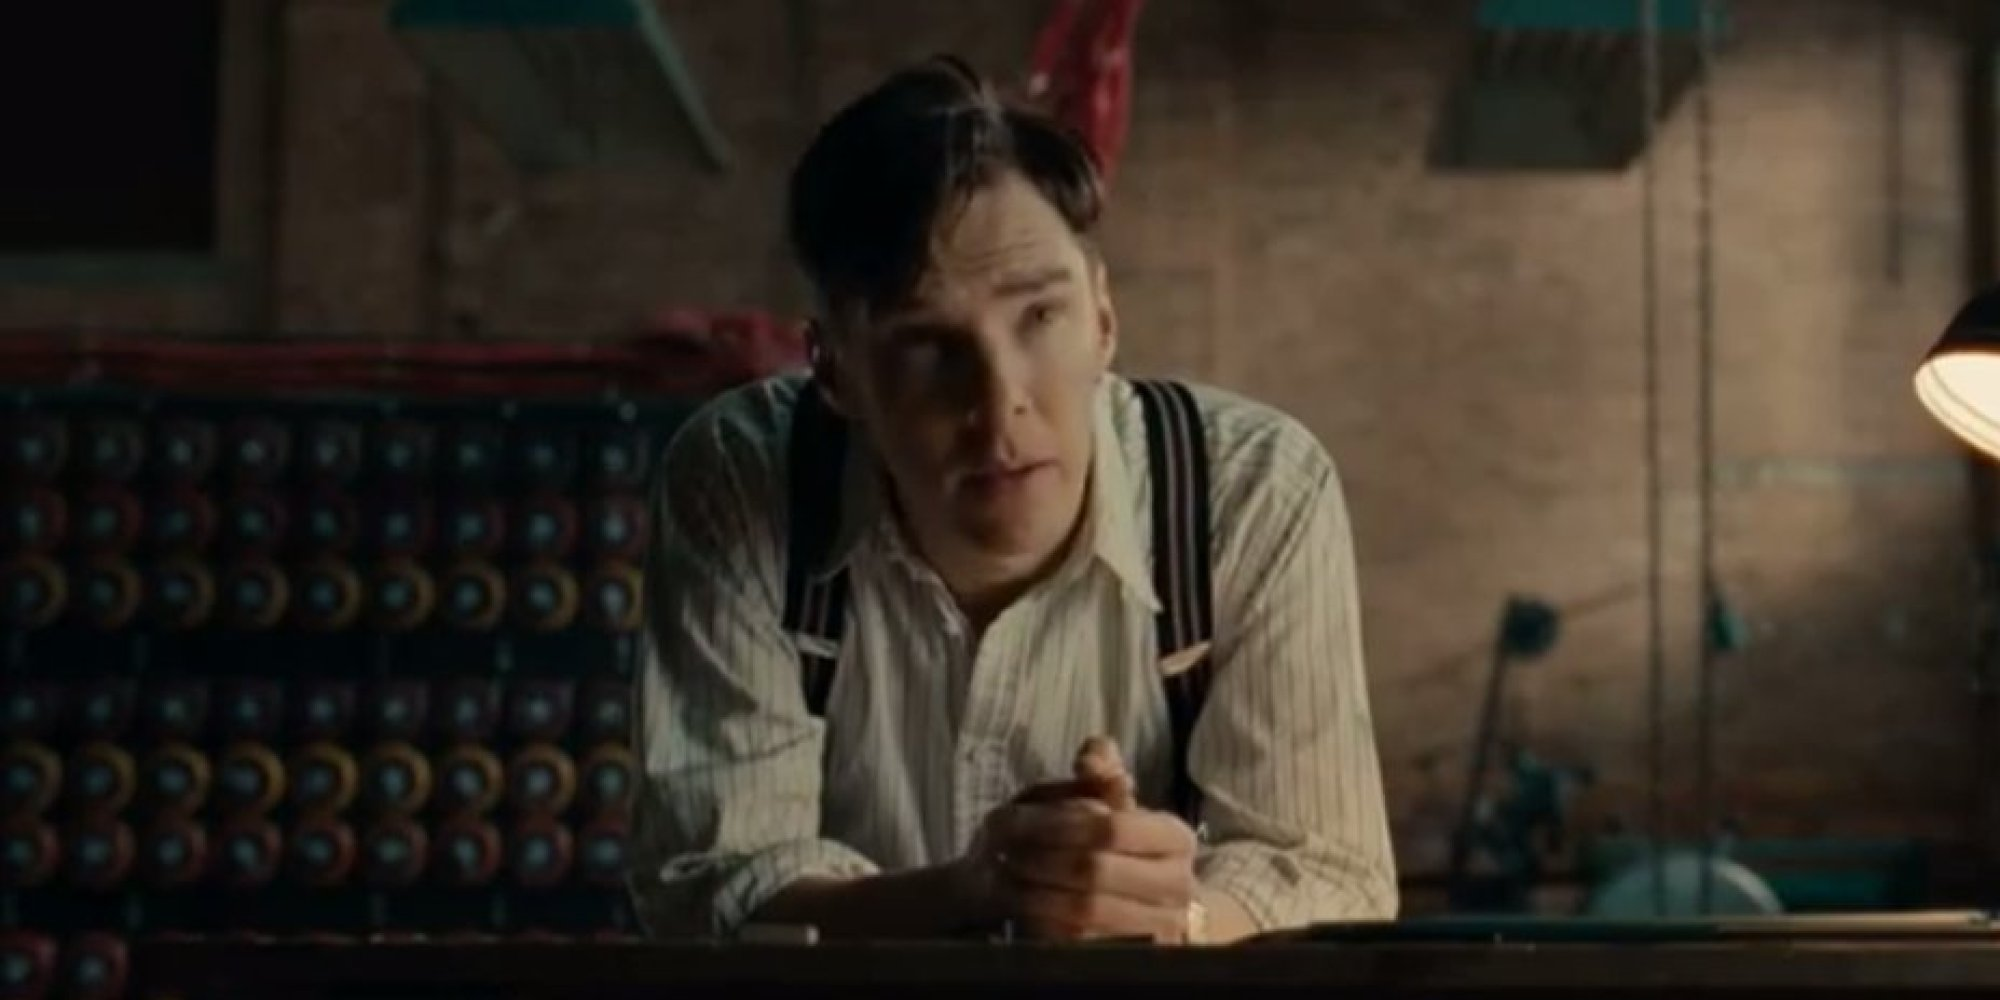 The Imitation Game Trailer Offers A Look At Benedict